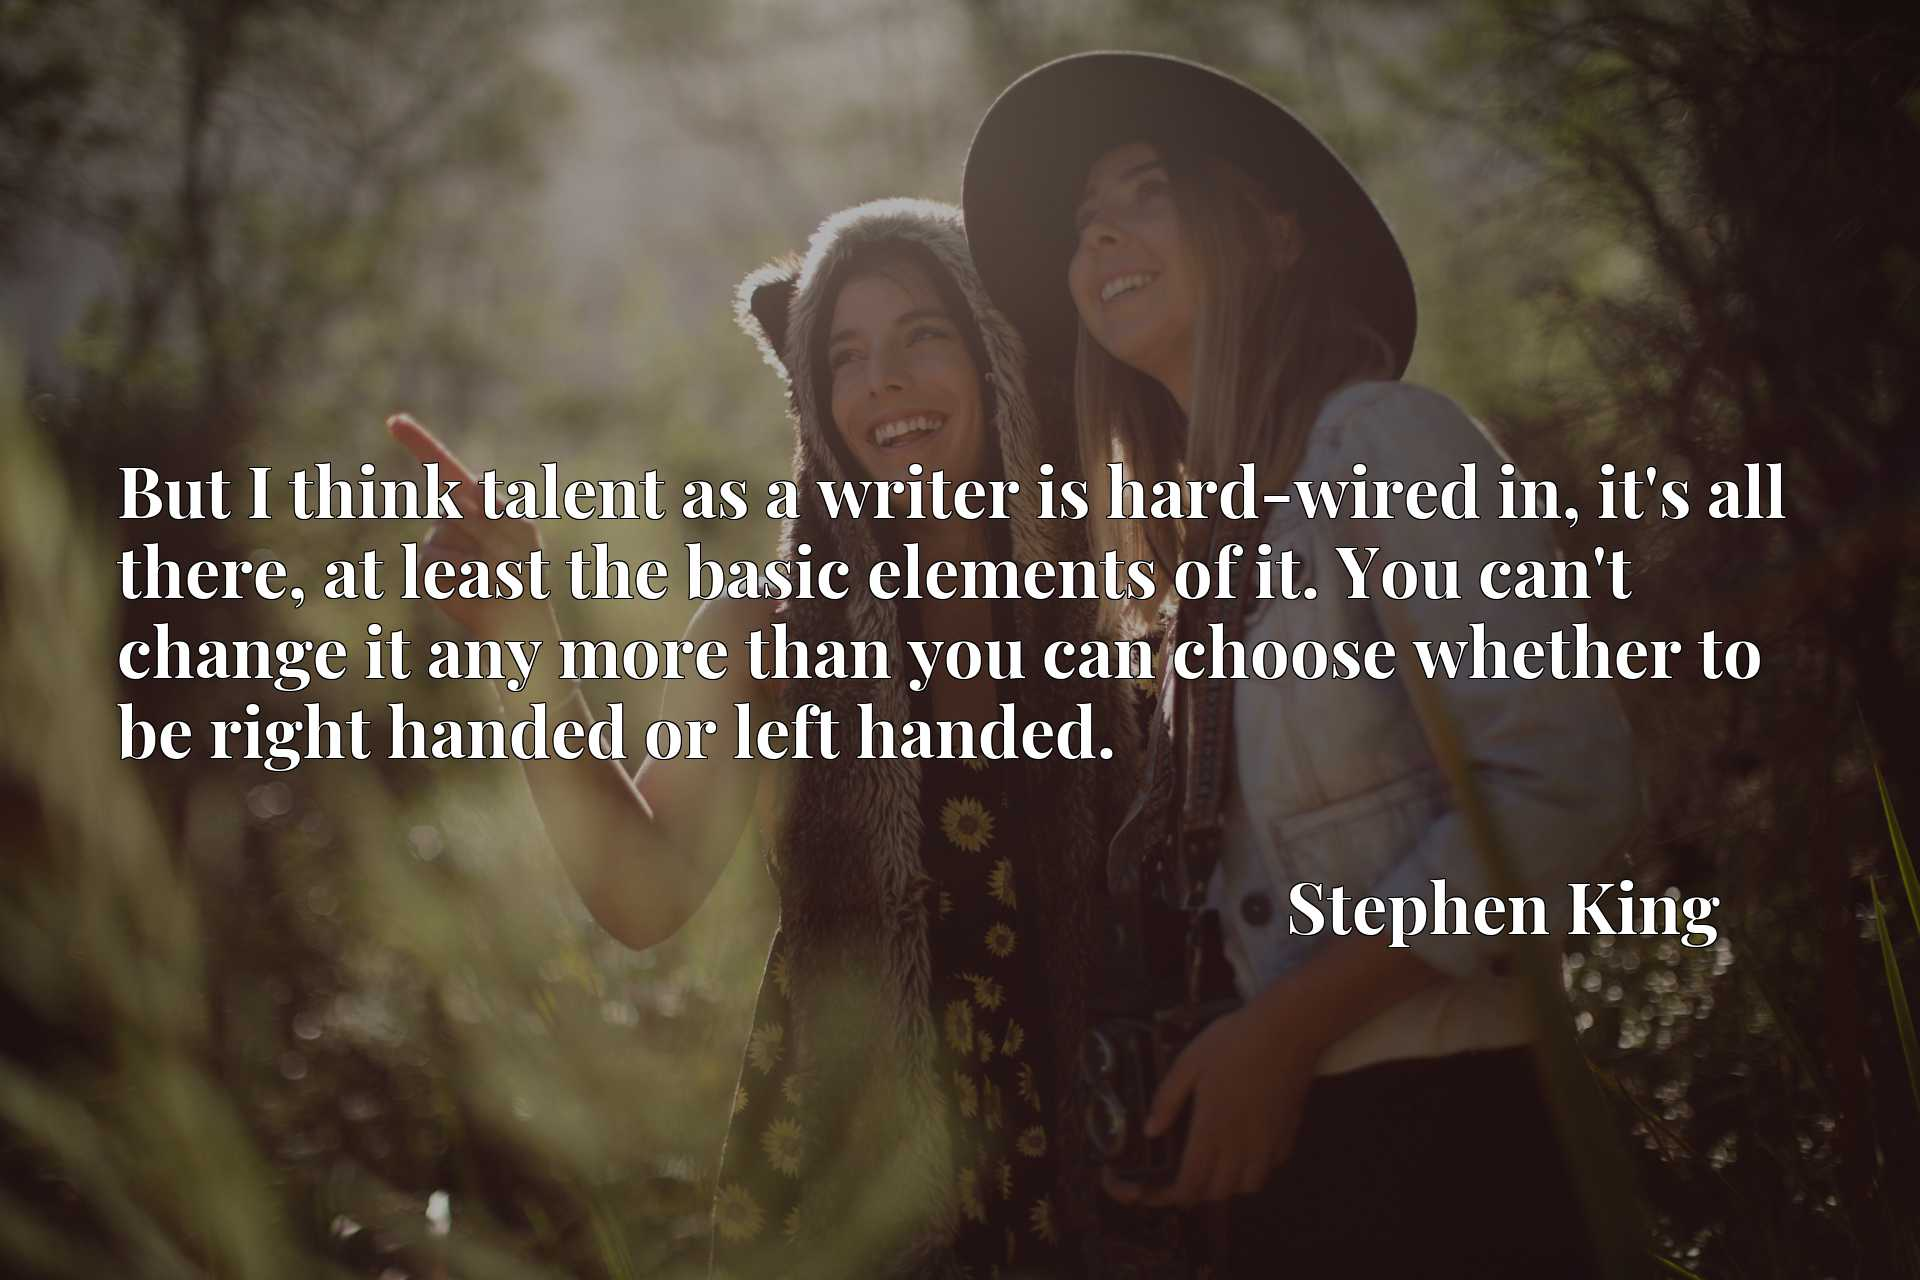 But I think talent as a writer is hard-wired in, it's all there, at least the basic elements of it. You can't change it any more than you can choose whether to be right handed or left handed.